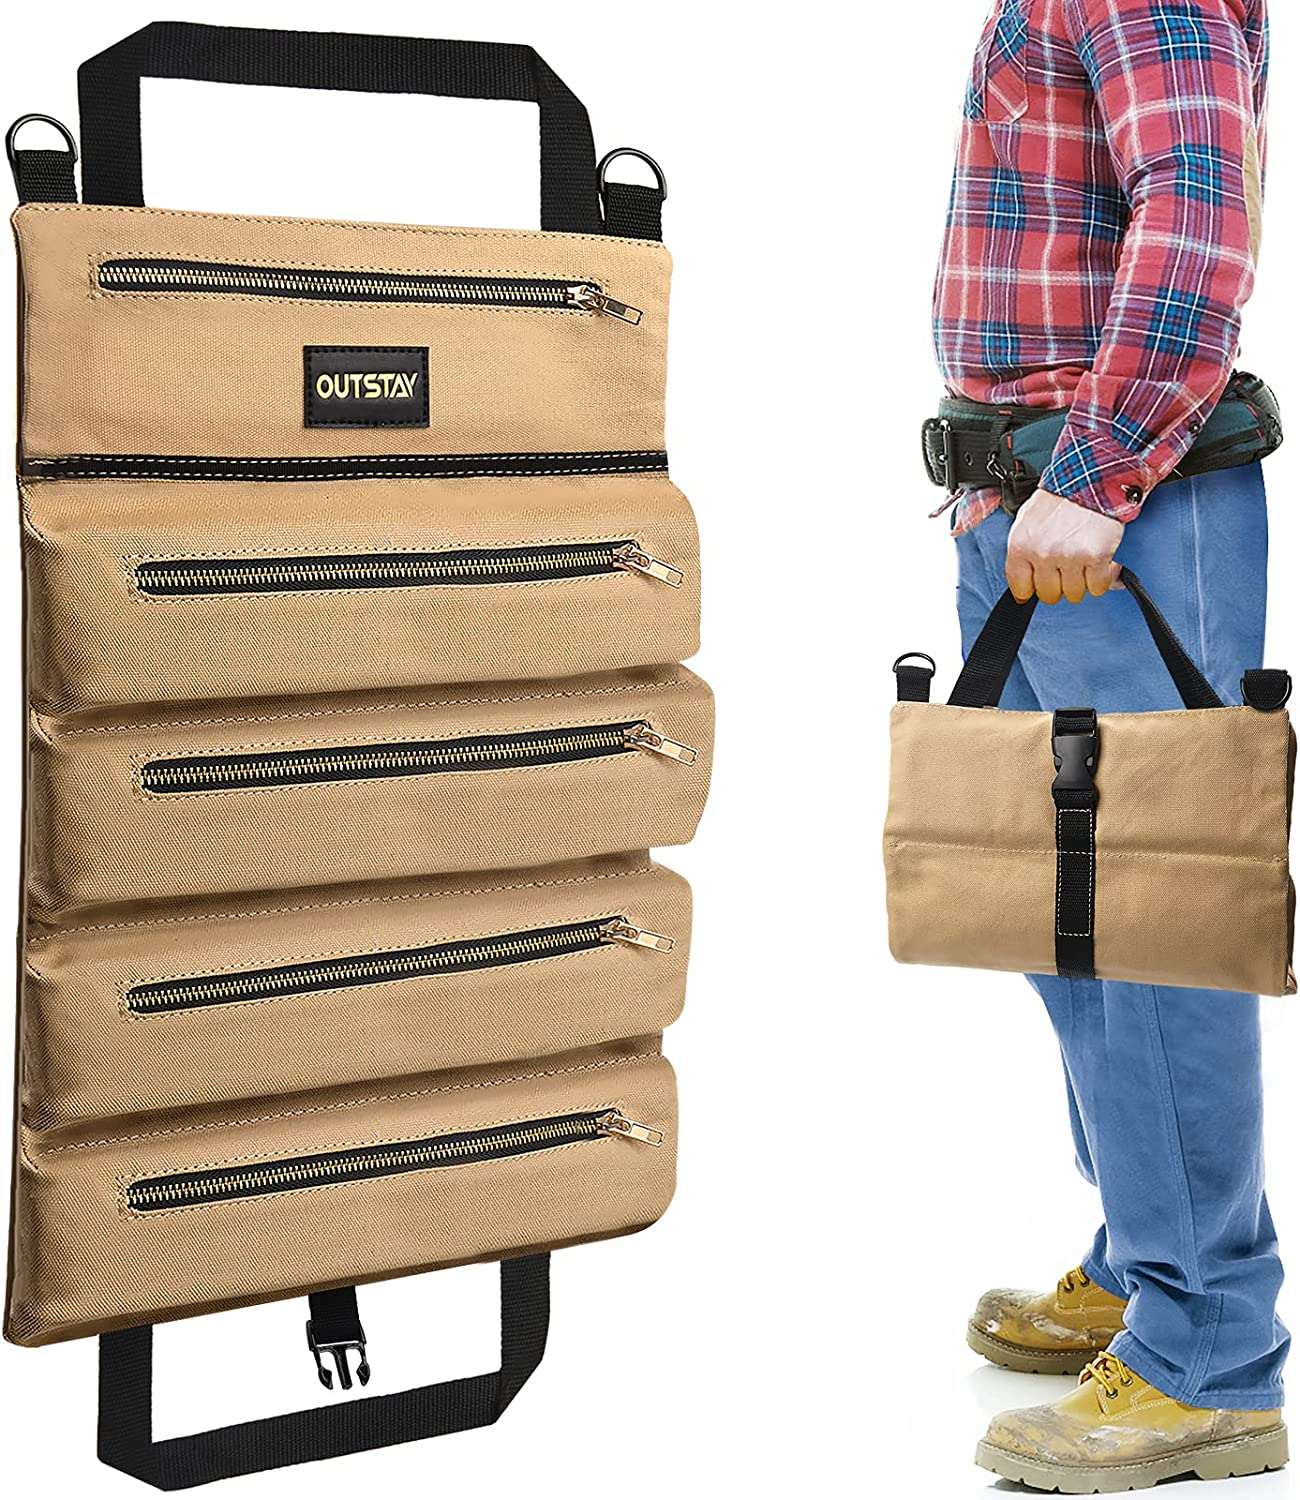 Multi-Purpose Roll Up Tool Bag H Canvas Yuede Organizer Storage Super sale Quantity limited period limited